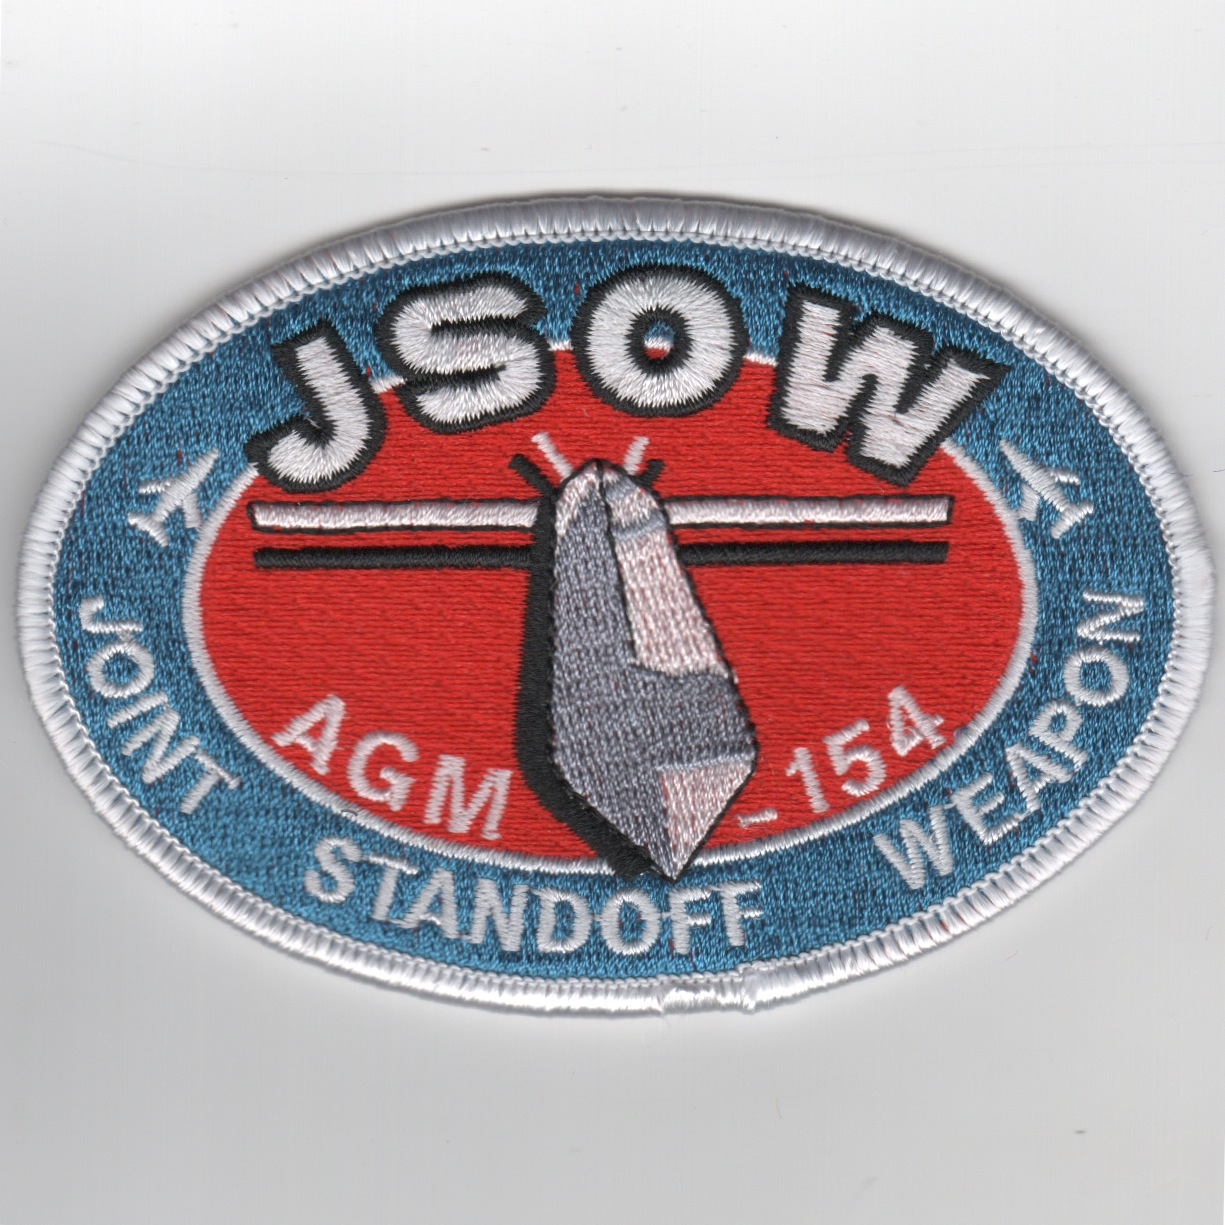 AGM-154 'JSOW' Patch